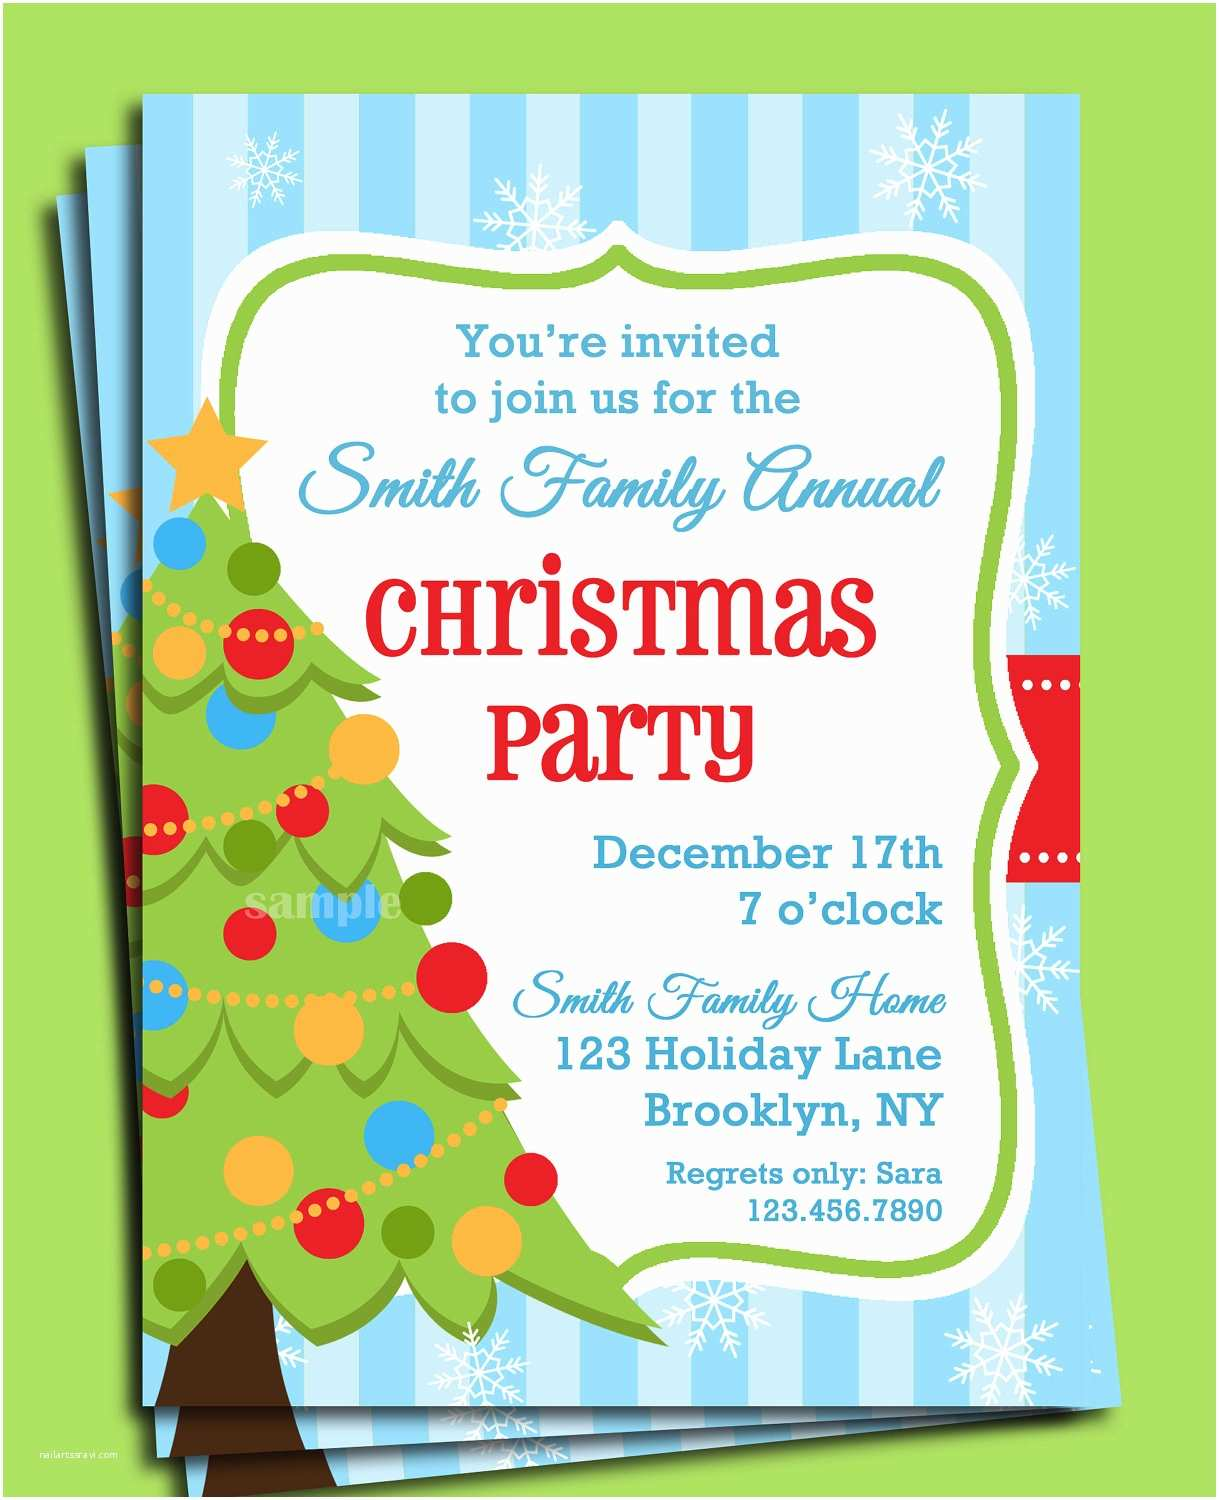 Funny Christmas Party Invitation Wording Fice Christmas Party Invitation Wording